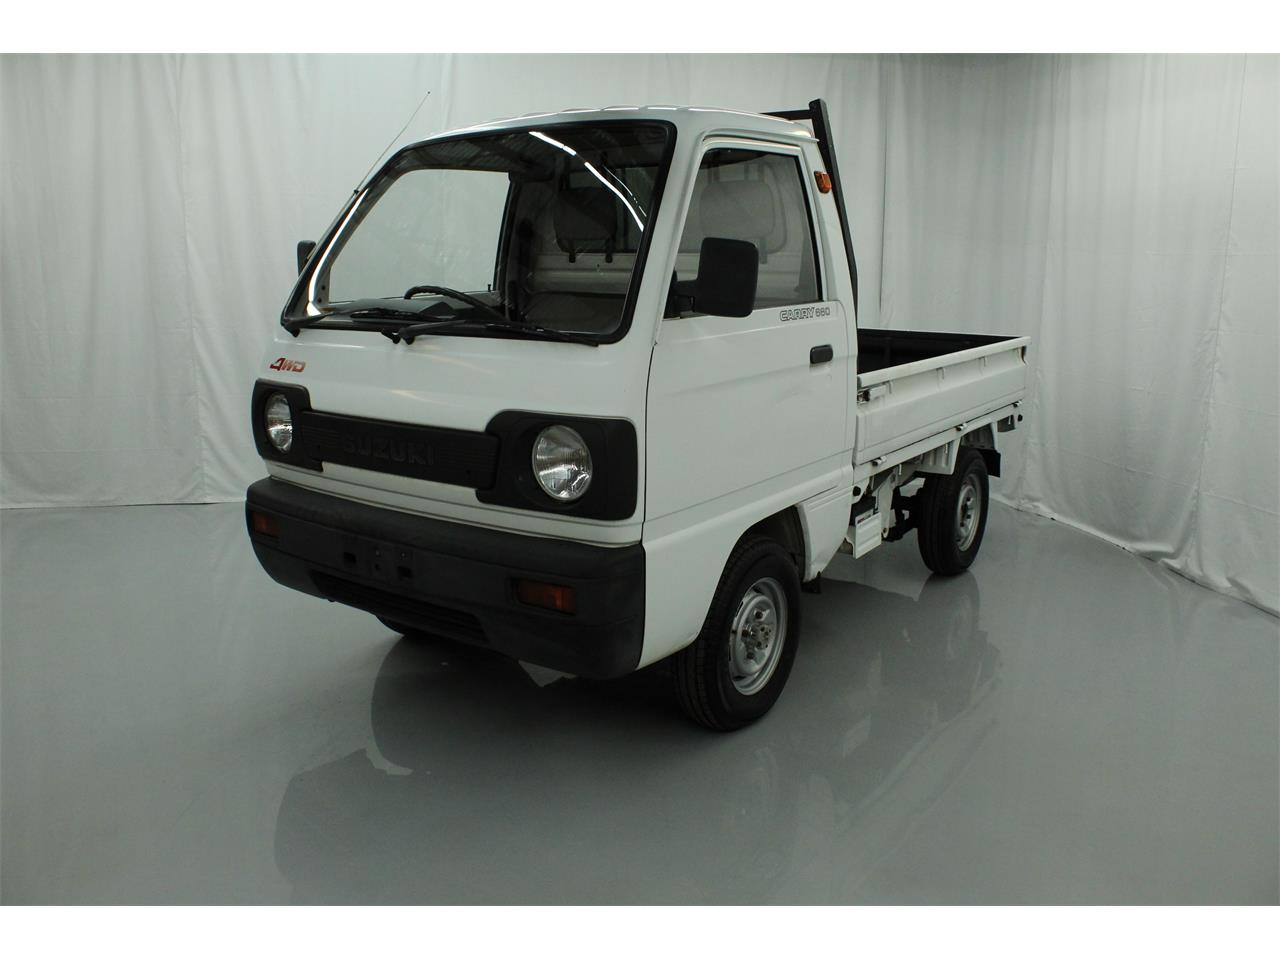 1990 Suzuki Carry for sale in Christiansburg, VA – photo 5